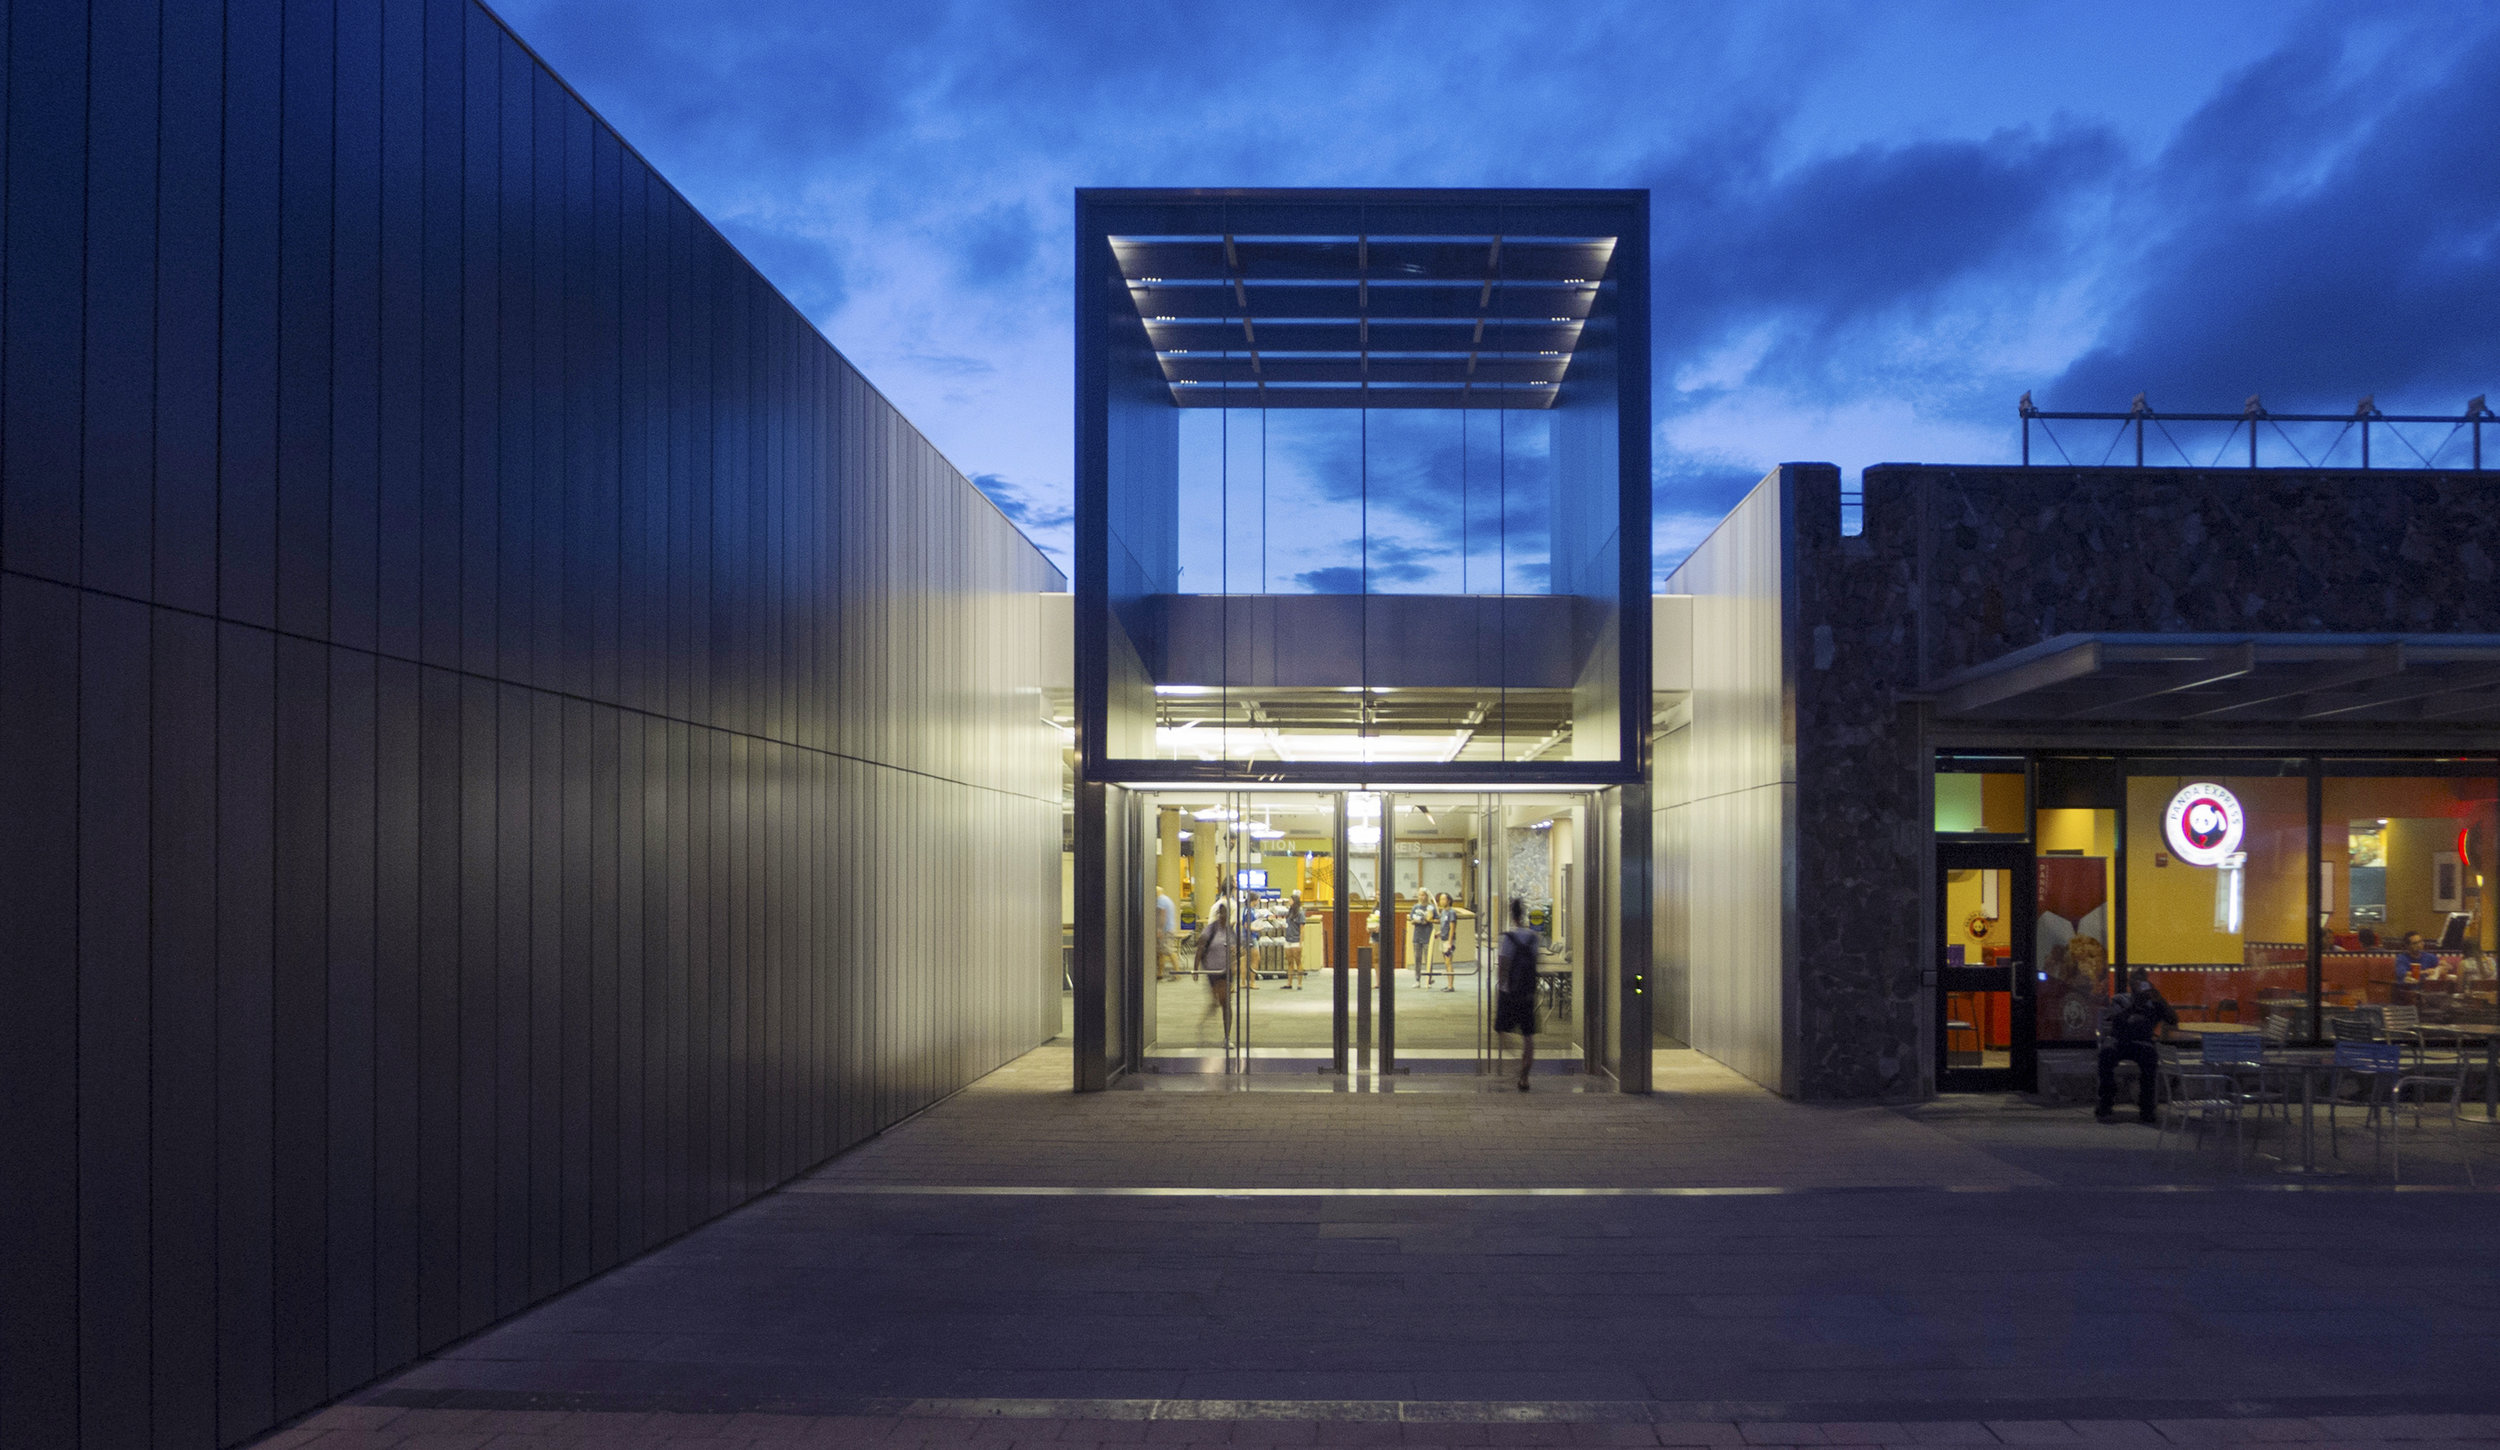 GLASS VOLUME PROVIDES VISIBILITY TO THE STUDENT CENTER ENTRY